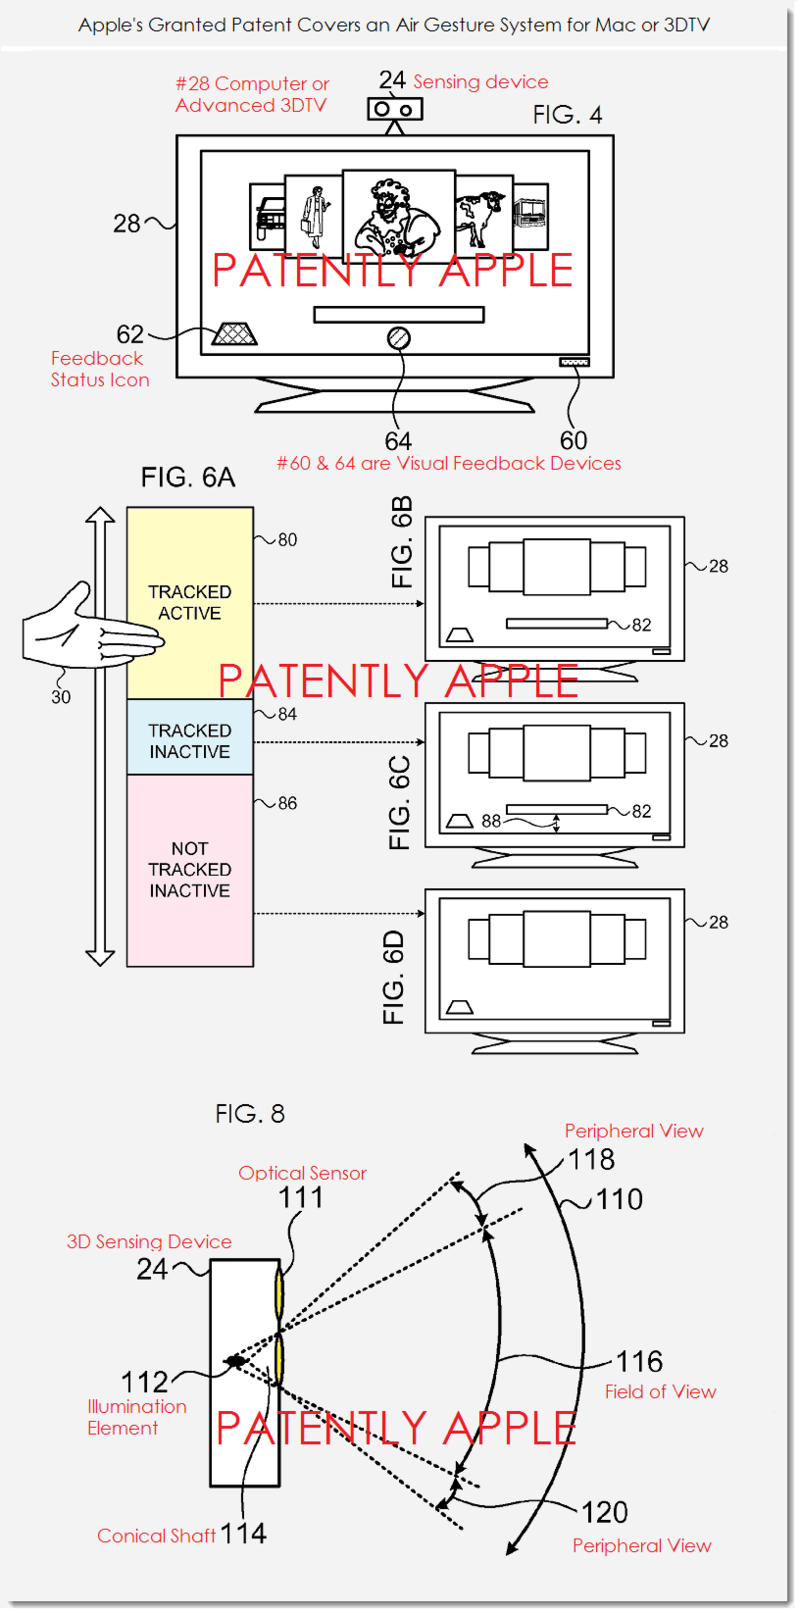 3AF2 - APPLE GRANTED PATENT 3DCOMPUTER OR 3DTV AIR GESTURE SYSTEM